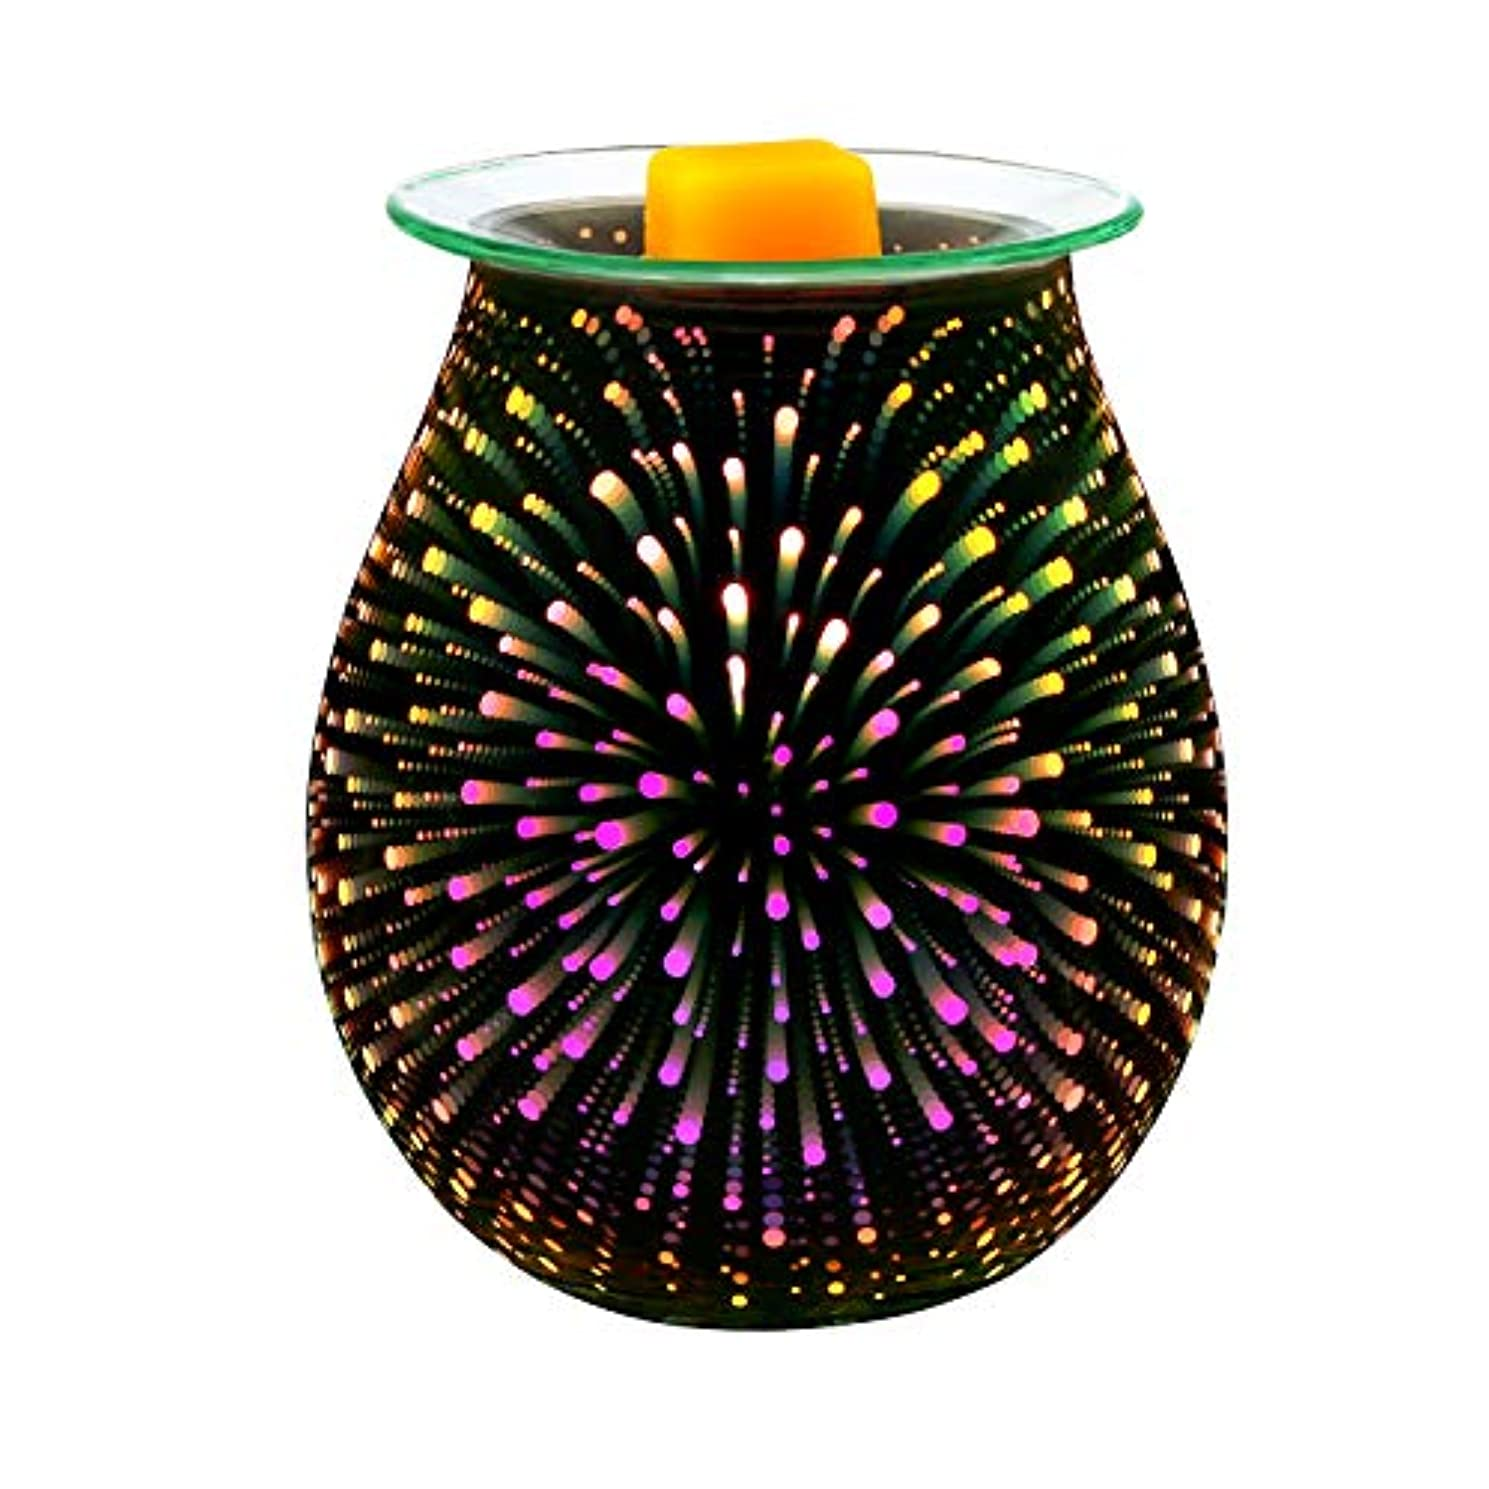 盆地キャロラインラジエーターElectric Oil Warmer COOSA 3D Effect Starburst Fireworks Glass Wax Tart Burner Fragrance Candle Warmer Incense...